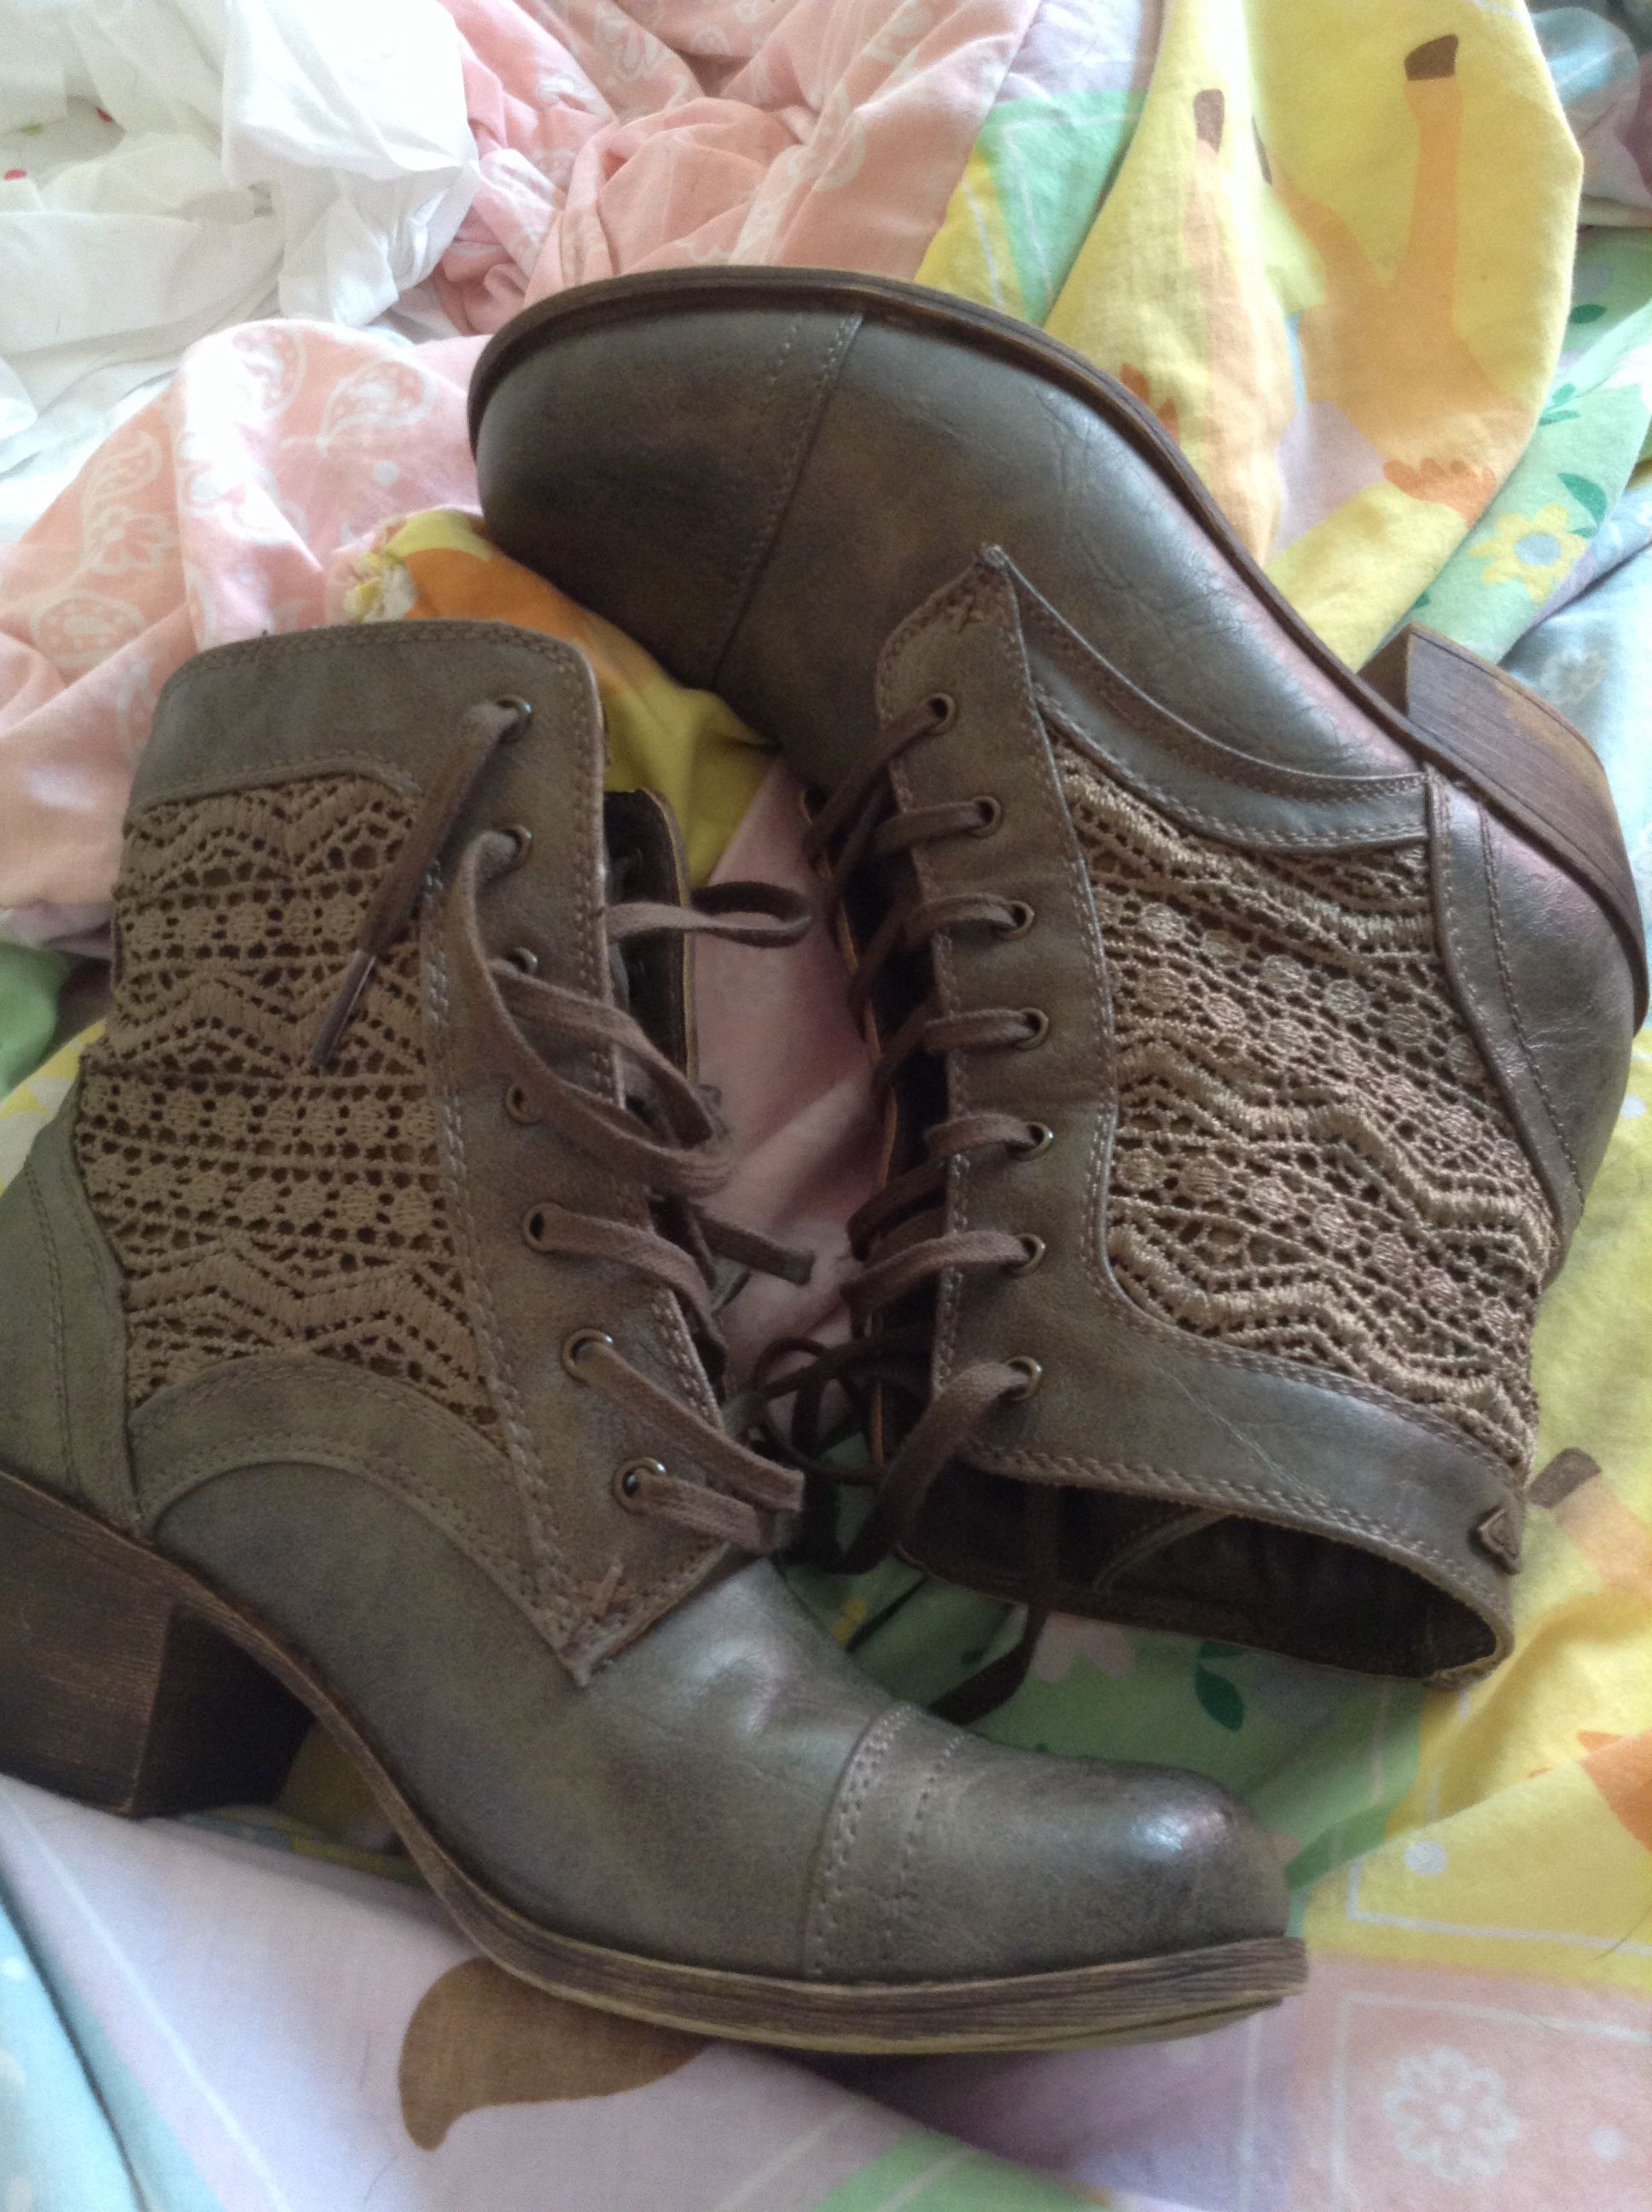 I got a pair of combat boots!!!!!!!. I am in LOVE with these boots